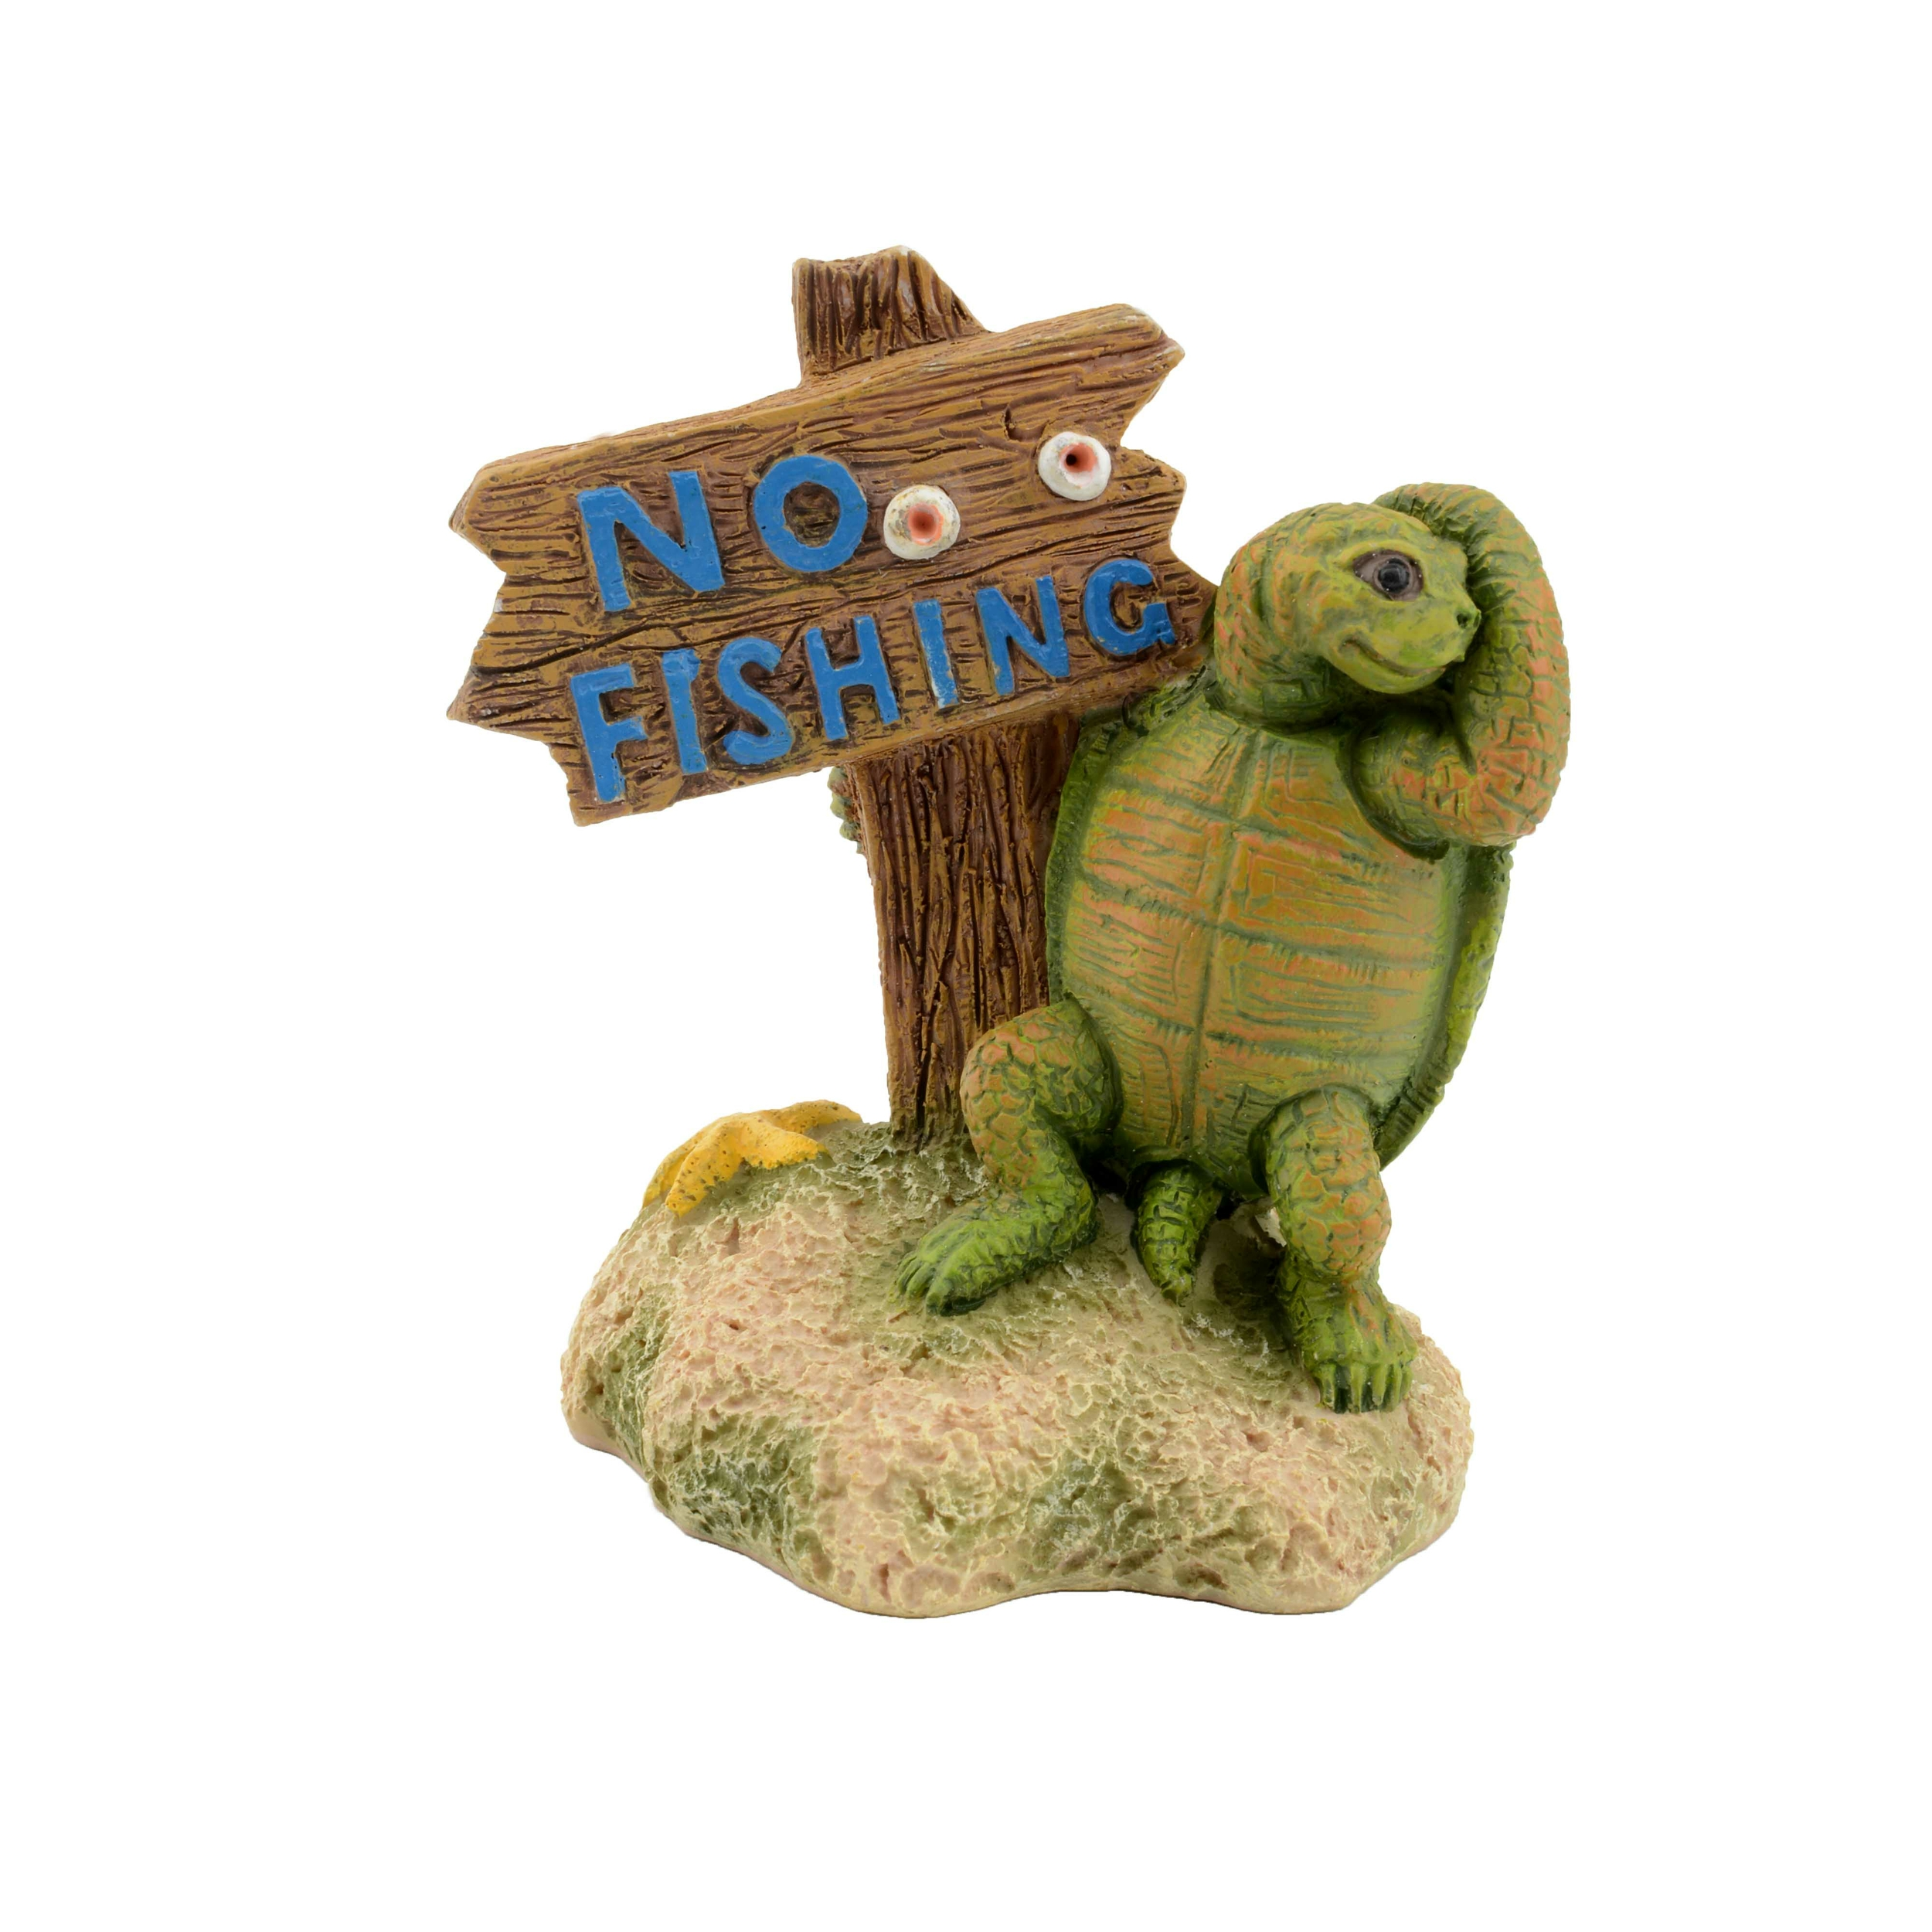 AQUAVIE Fun Tortue Panneau décoration aquarium 7 x 6 x 8,5 cm